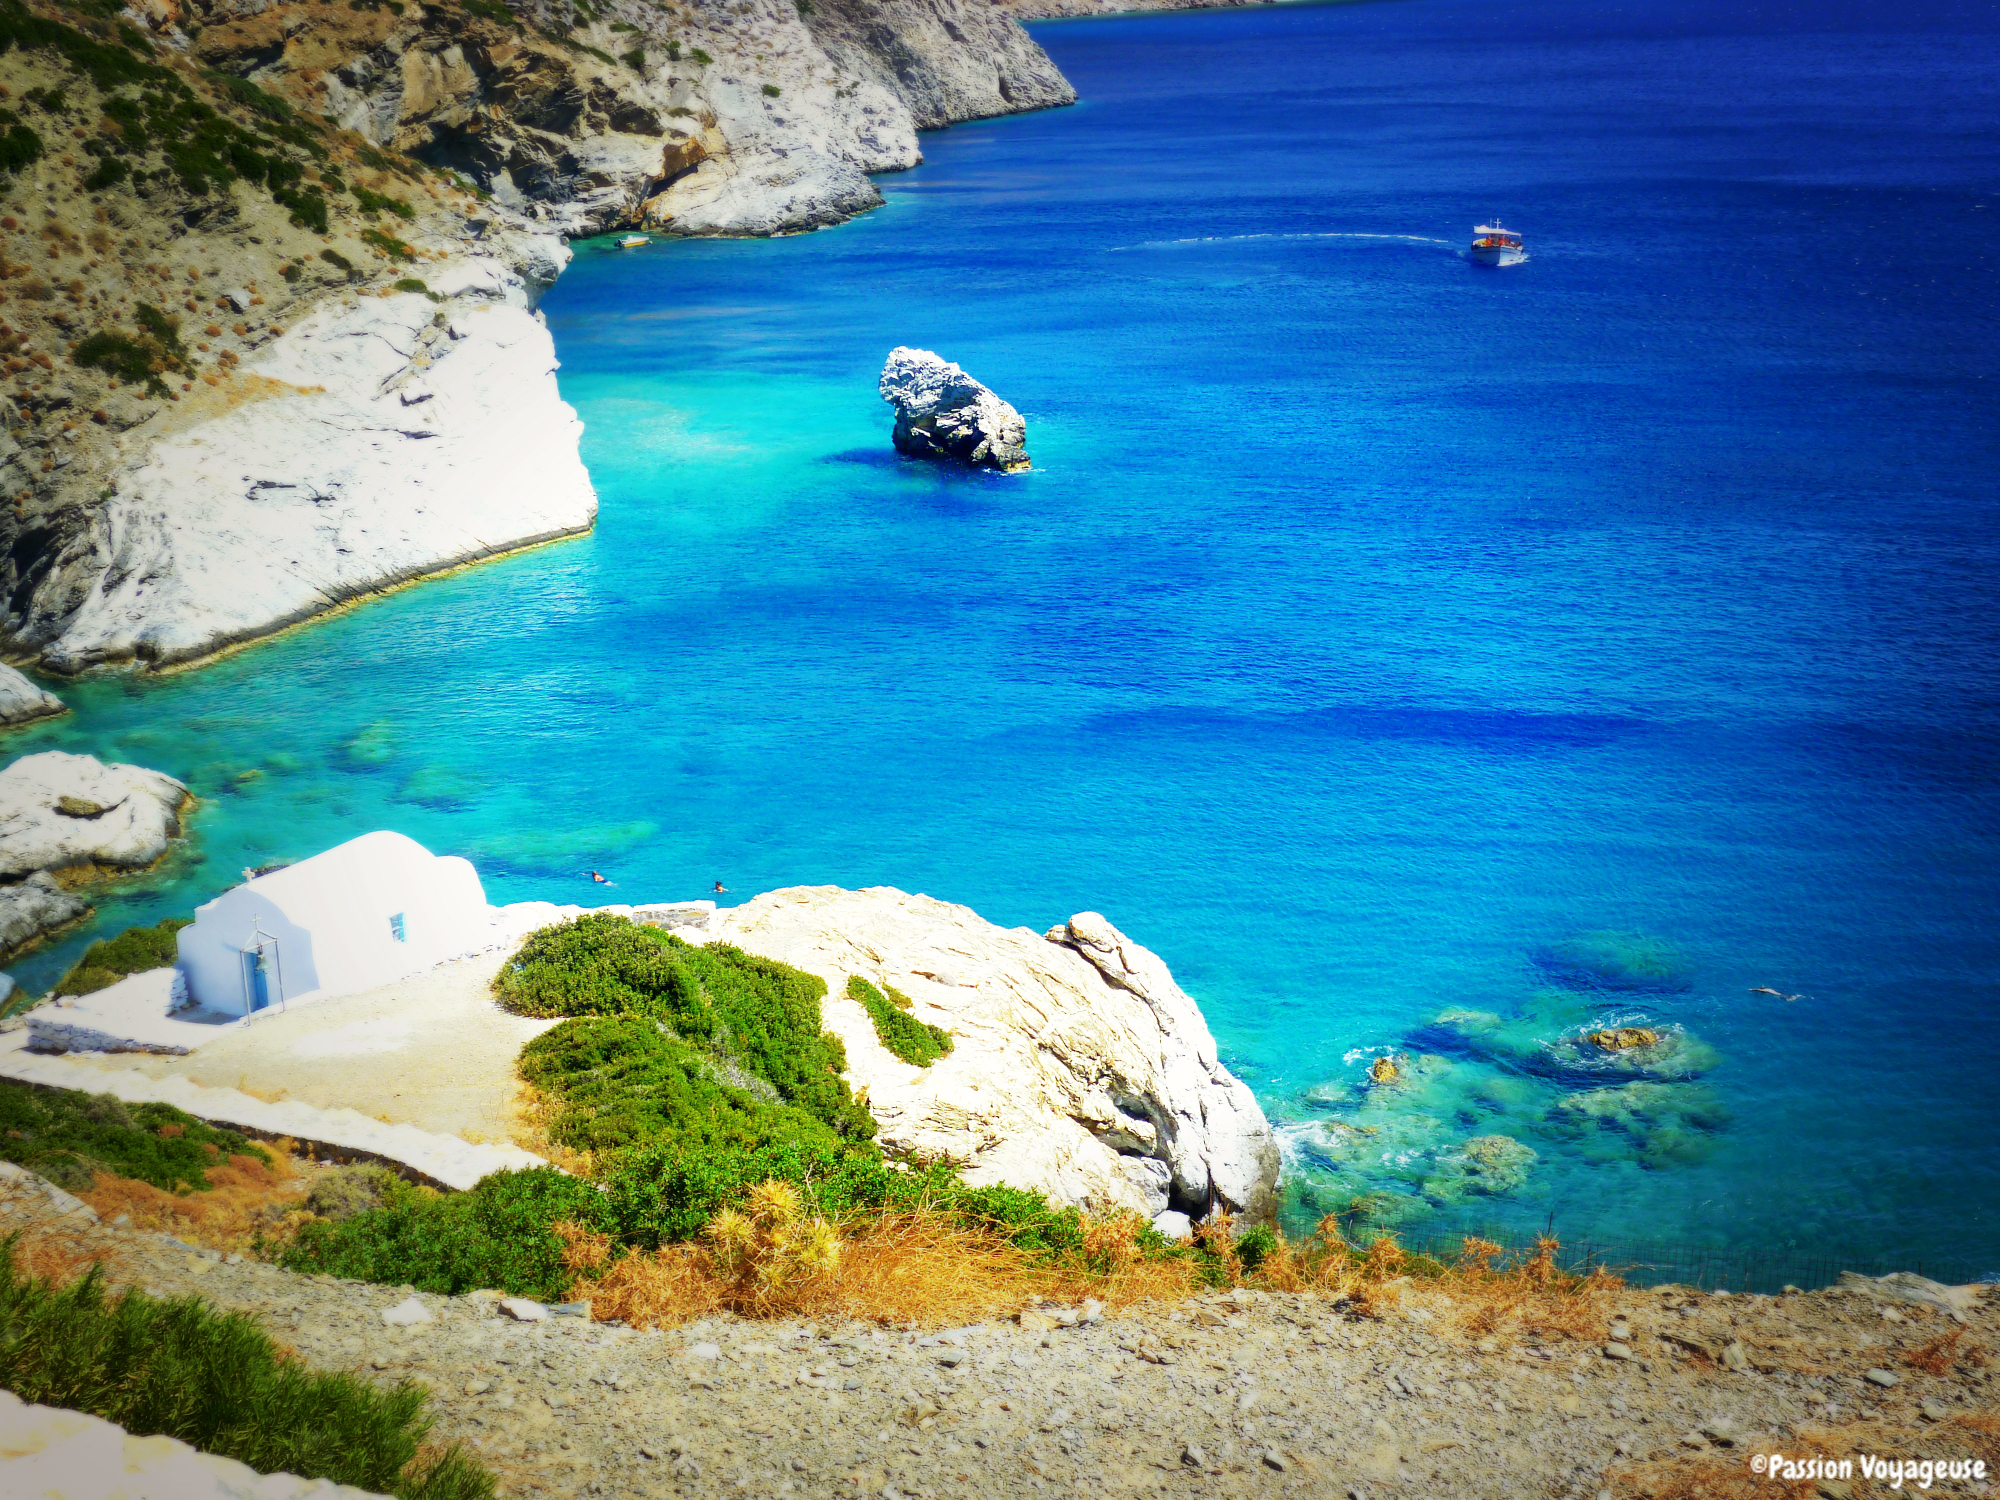 amorgos grece cyclade mer turquoise falaises